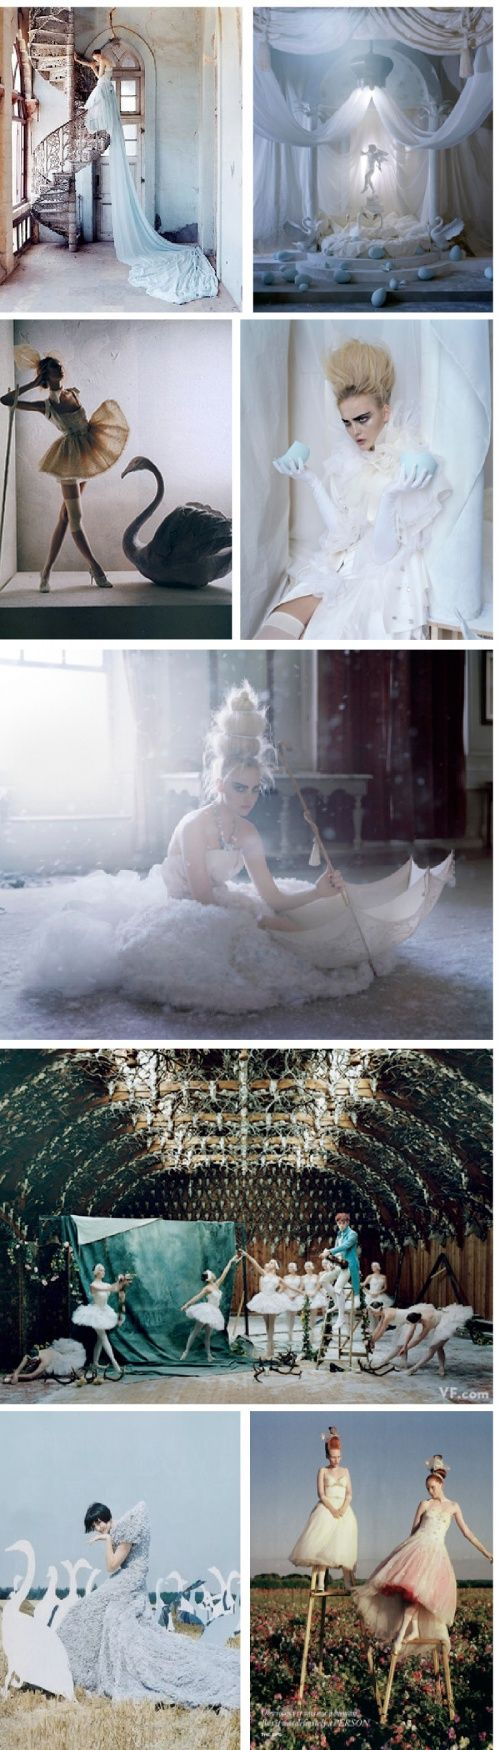 Tim Walker. Because art can be everything you want and need it to be <3 it isn't trapped between the canvas and the paintbrush.